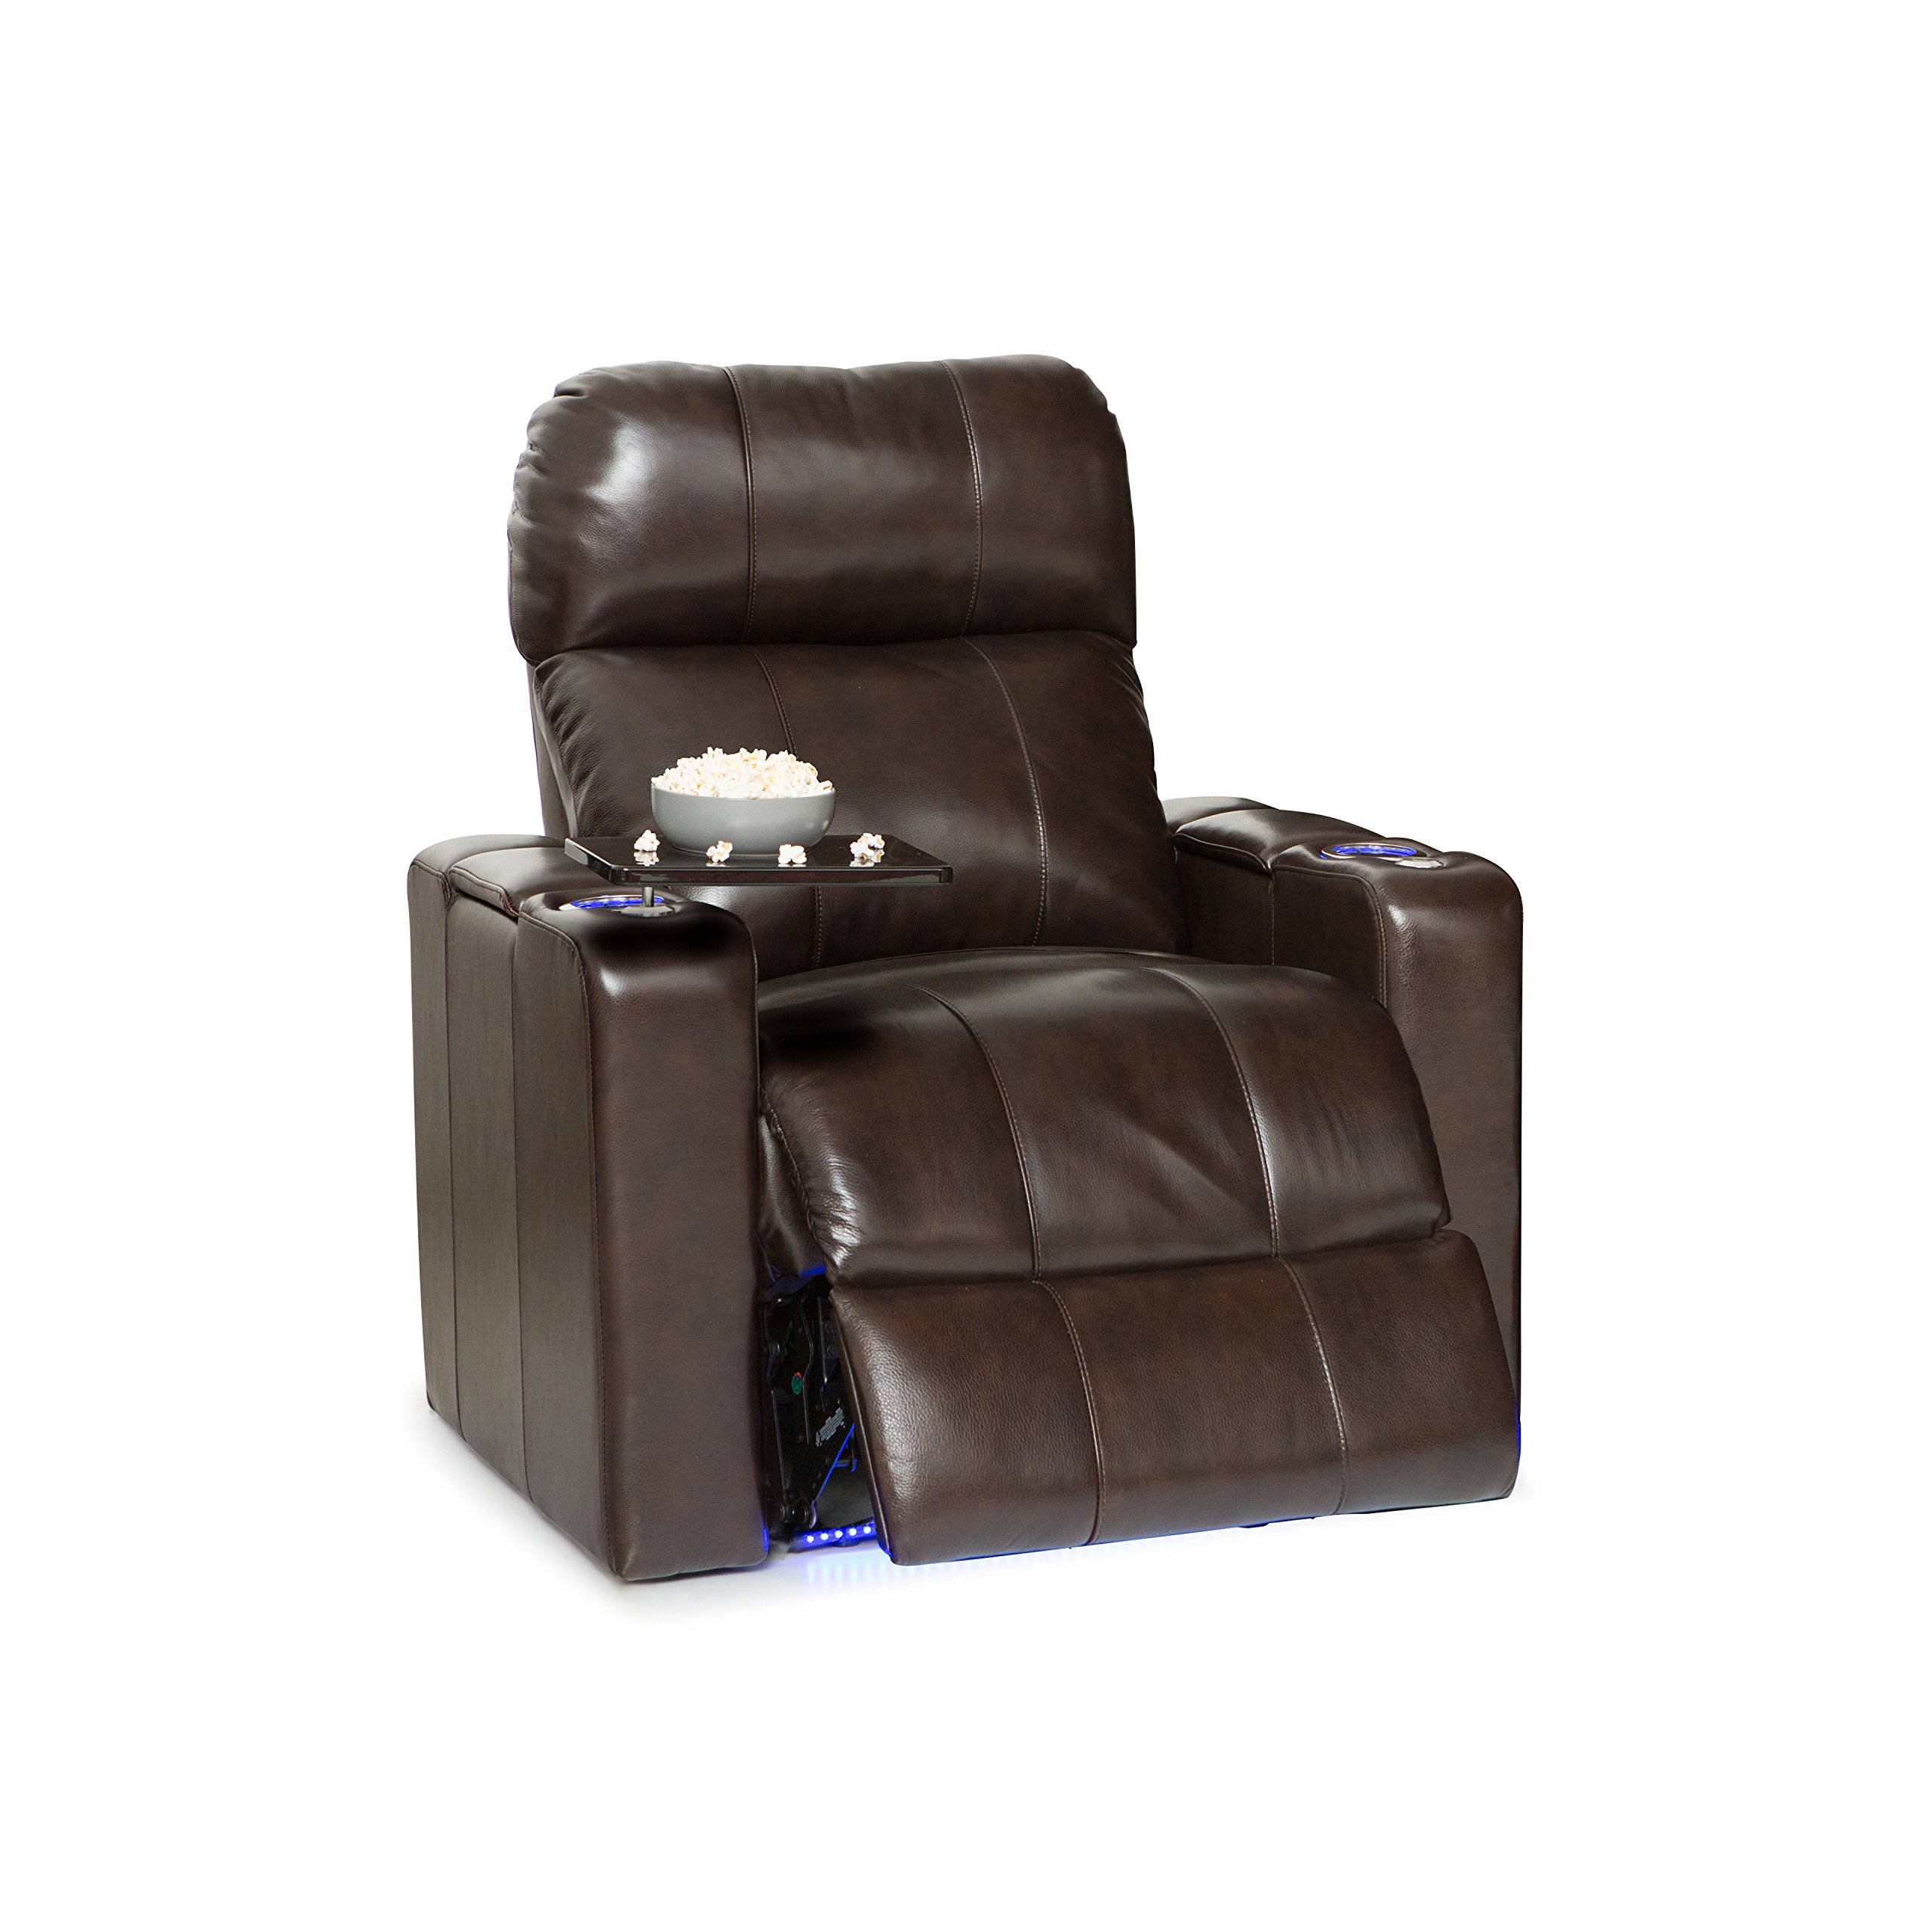 Seatcraft Monterey Leather Power Recliner with Adjustable Powered Headrest, In-Arm Storage, and USB Charging, Brown